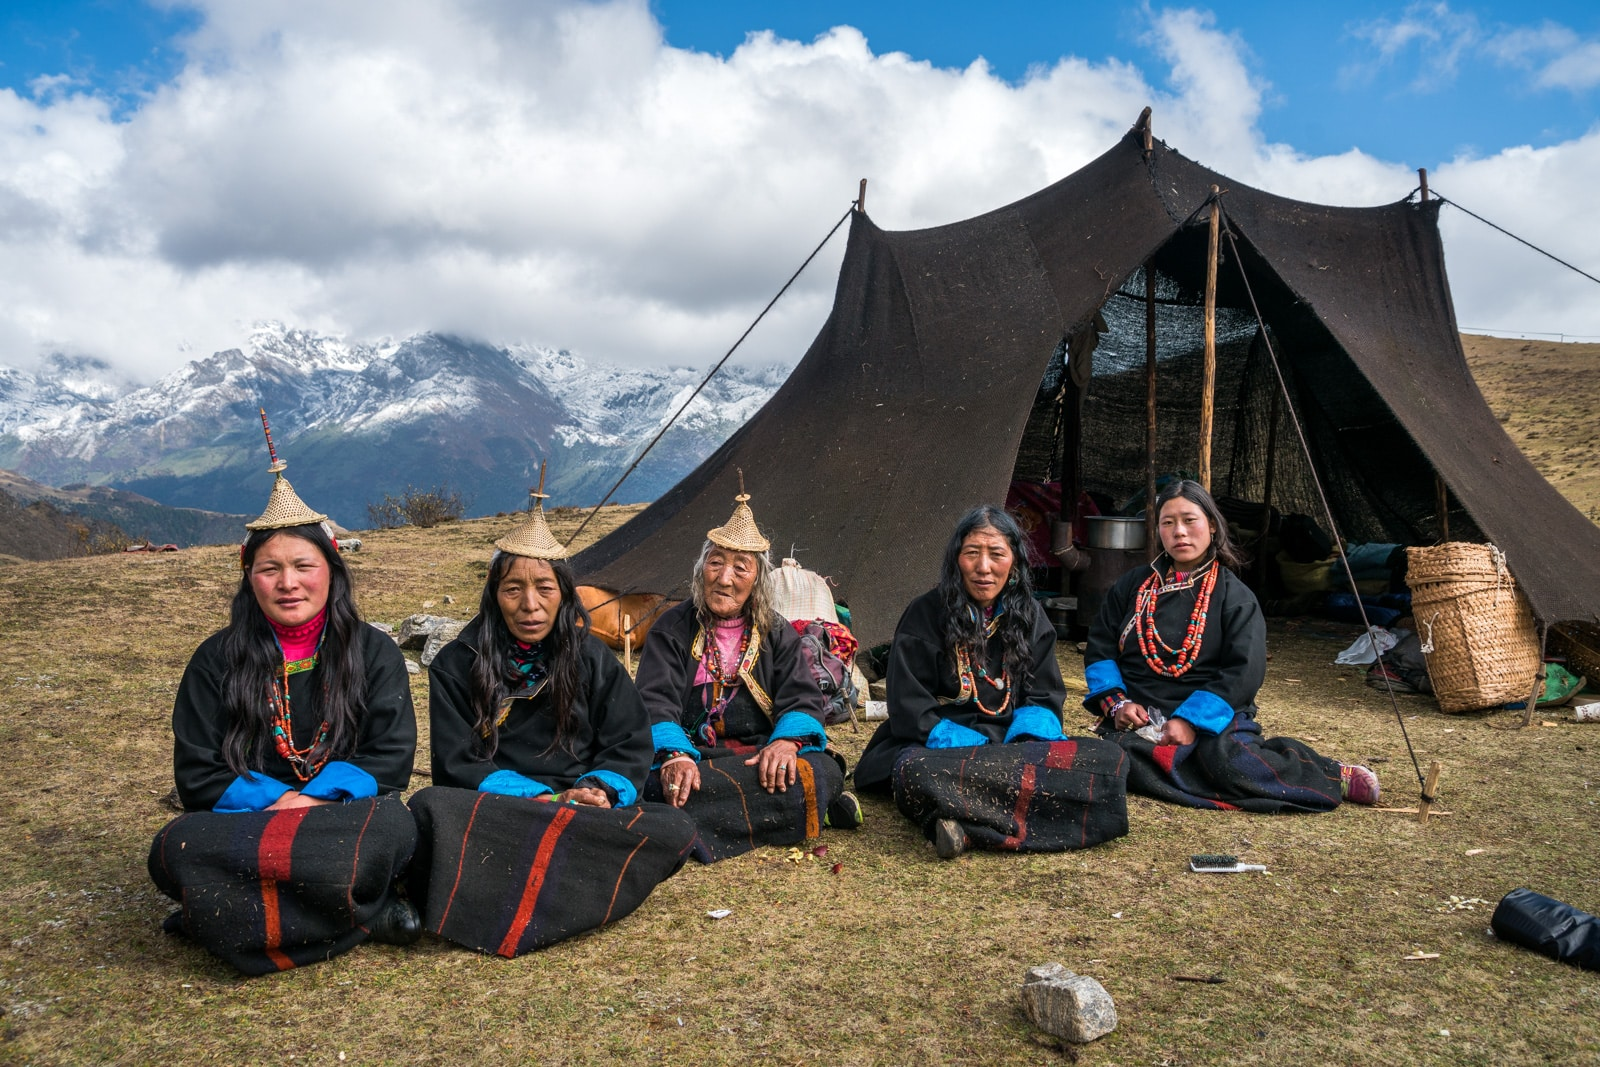 Photos of Layaps at the Royal Highlander Festival in Bhutan - Local Layap women sitting in front of a traditional black yak hair tent in Laya - Lost With Purpose travel blog